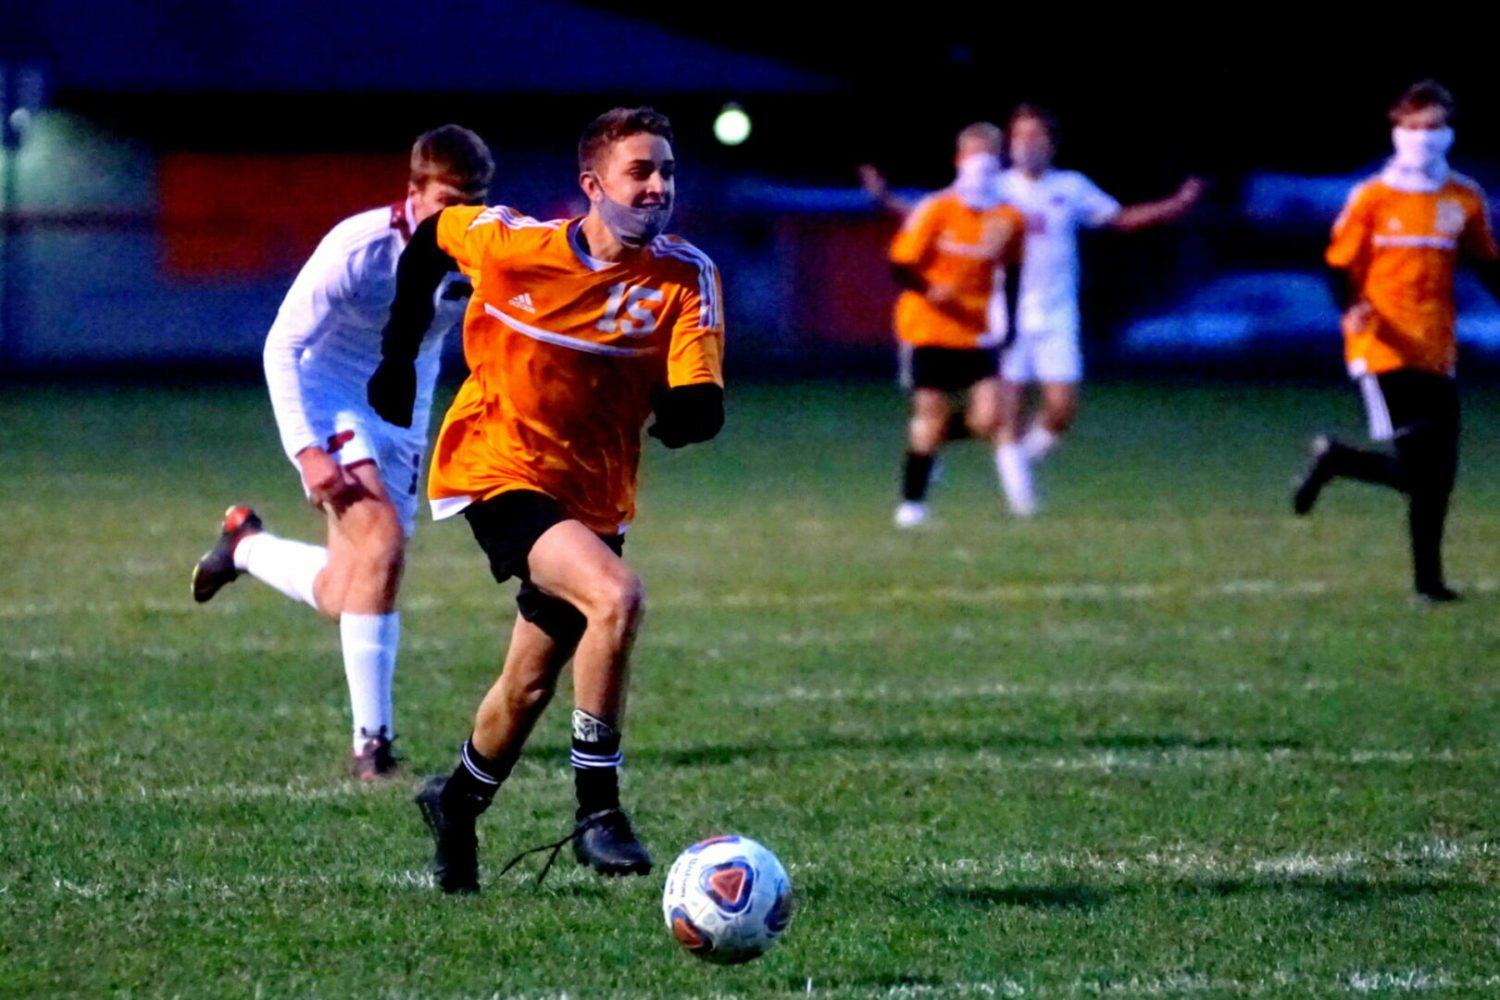 Ludington advances in district play with a 5-1 win over Fremont